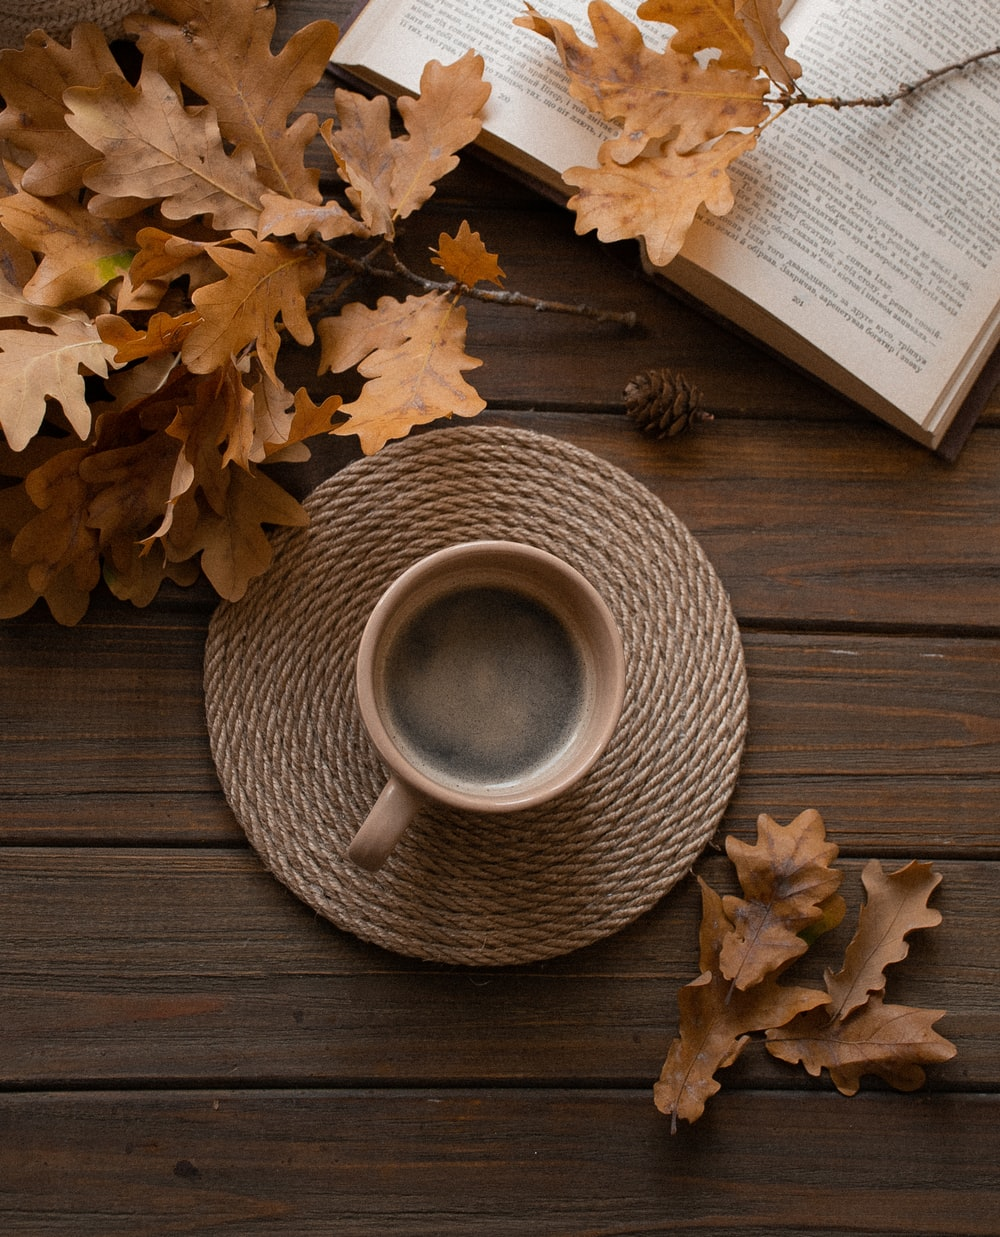 white ceramic mug on wicker saucer beside books with leaves